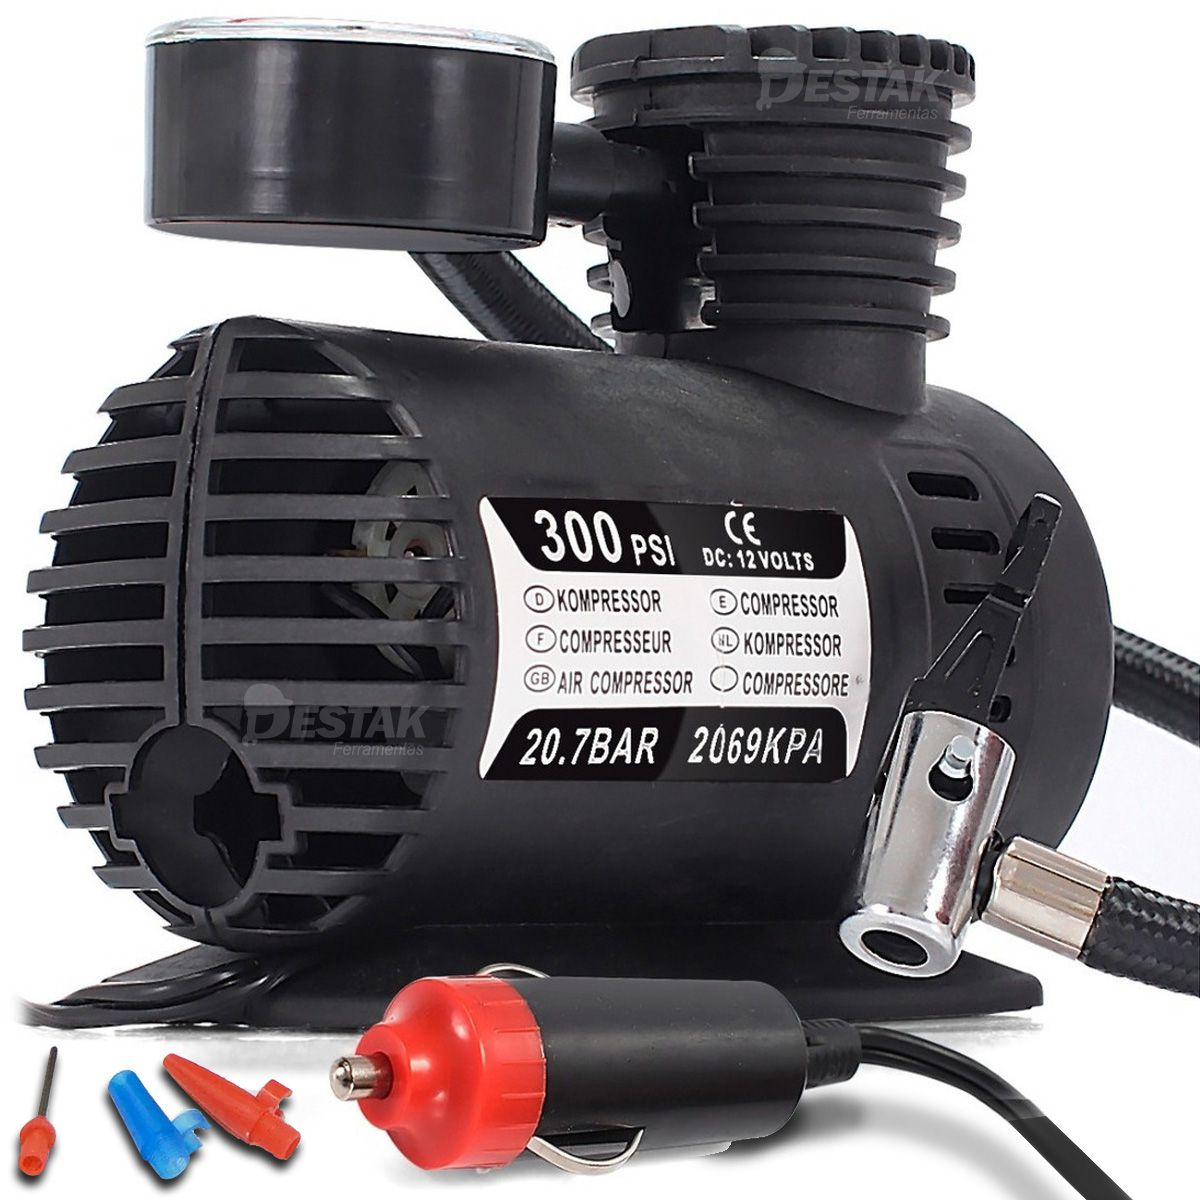 Mini Compressor De Ar Automotivo Multiuso 12v 300psi